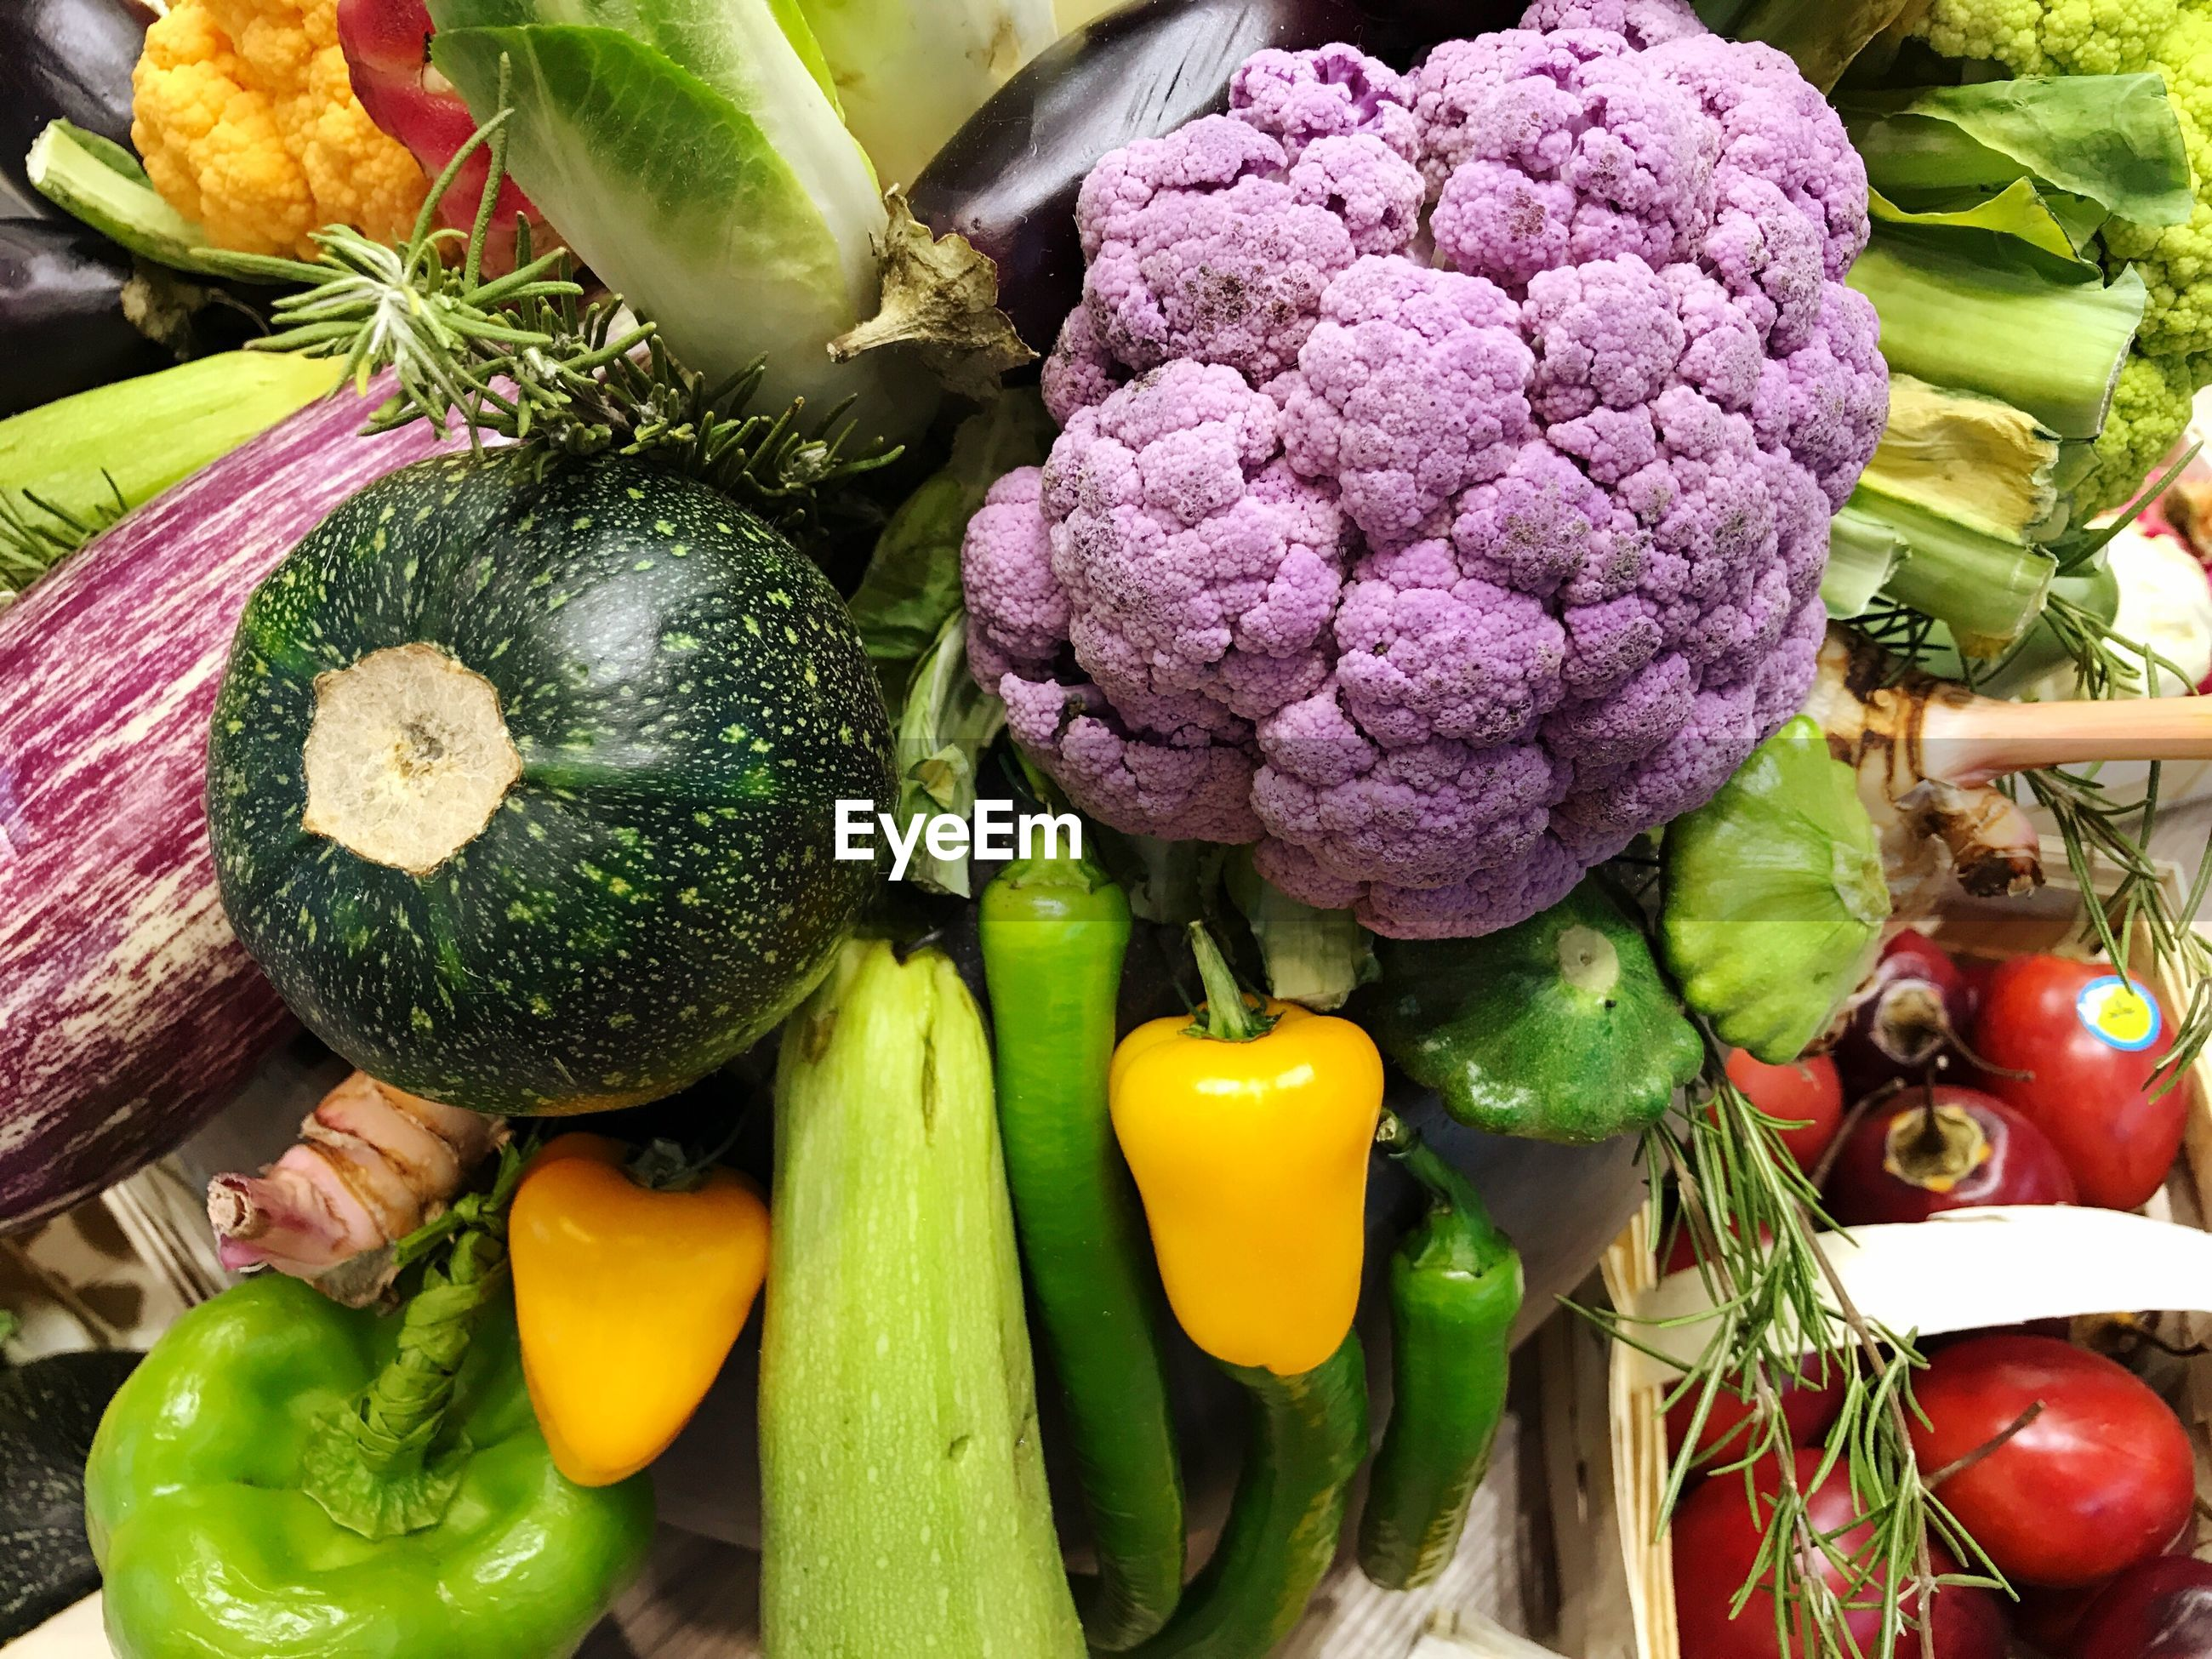 Close-up of various vegetables at market